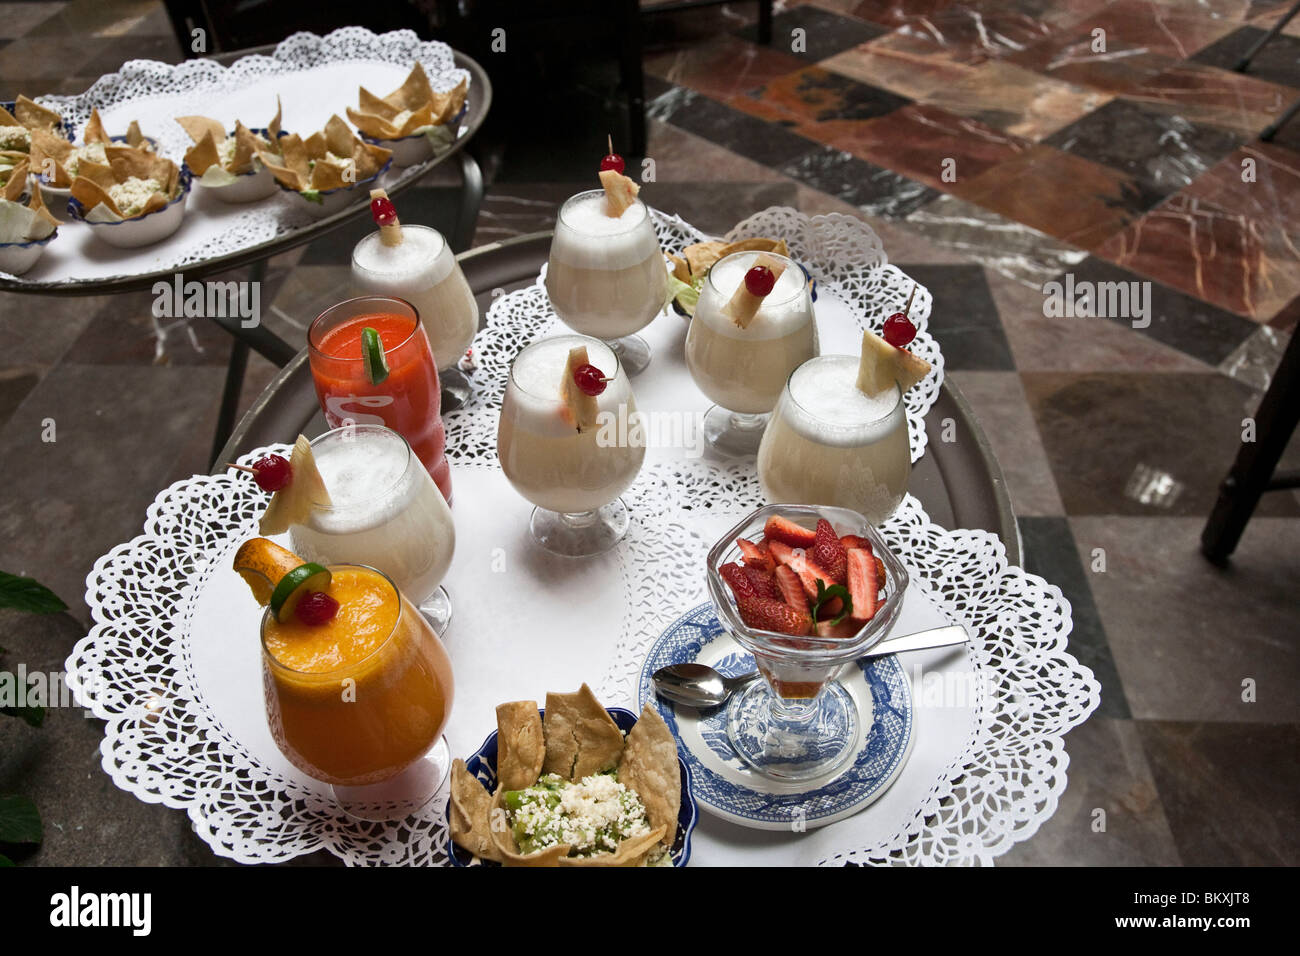 tray of delicious starter non-alcoholic drinks & appetizers to tempt diners at Sanborns House of Tiles restaurant - Stock Image